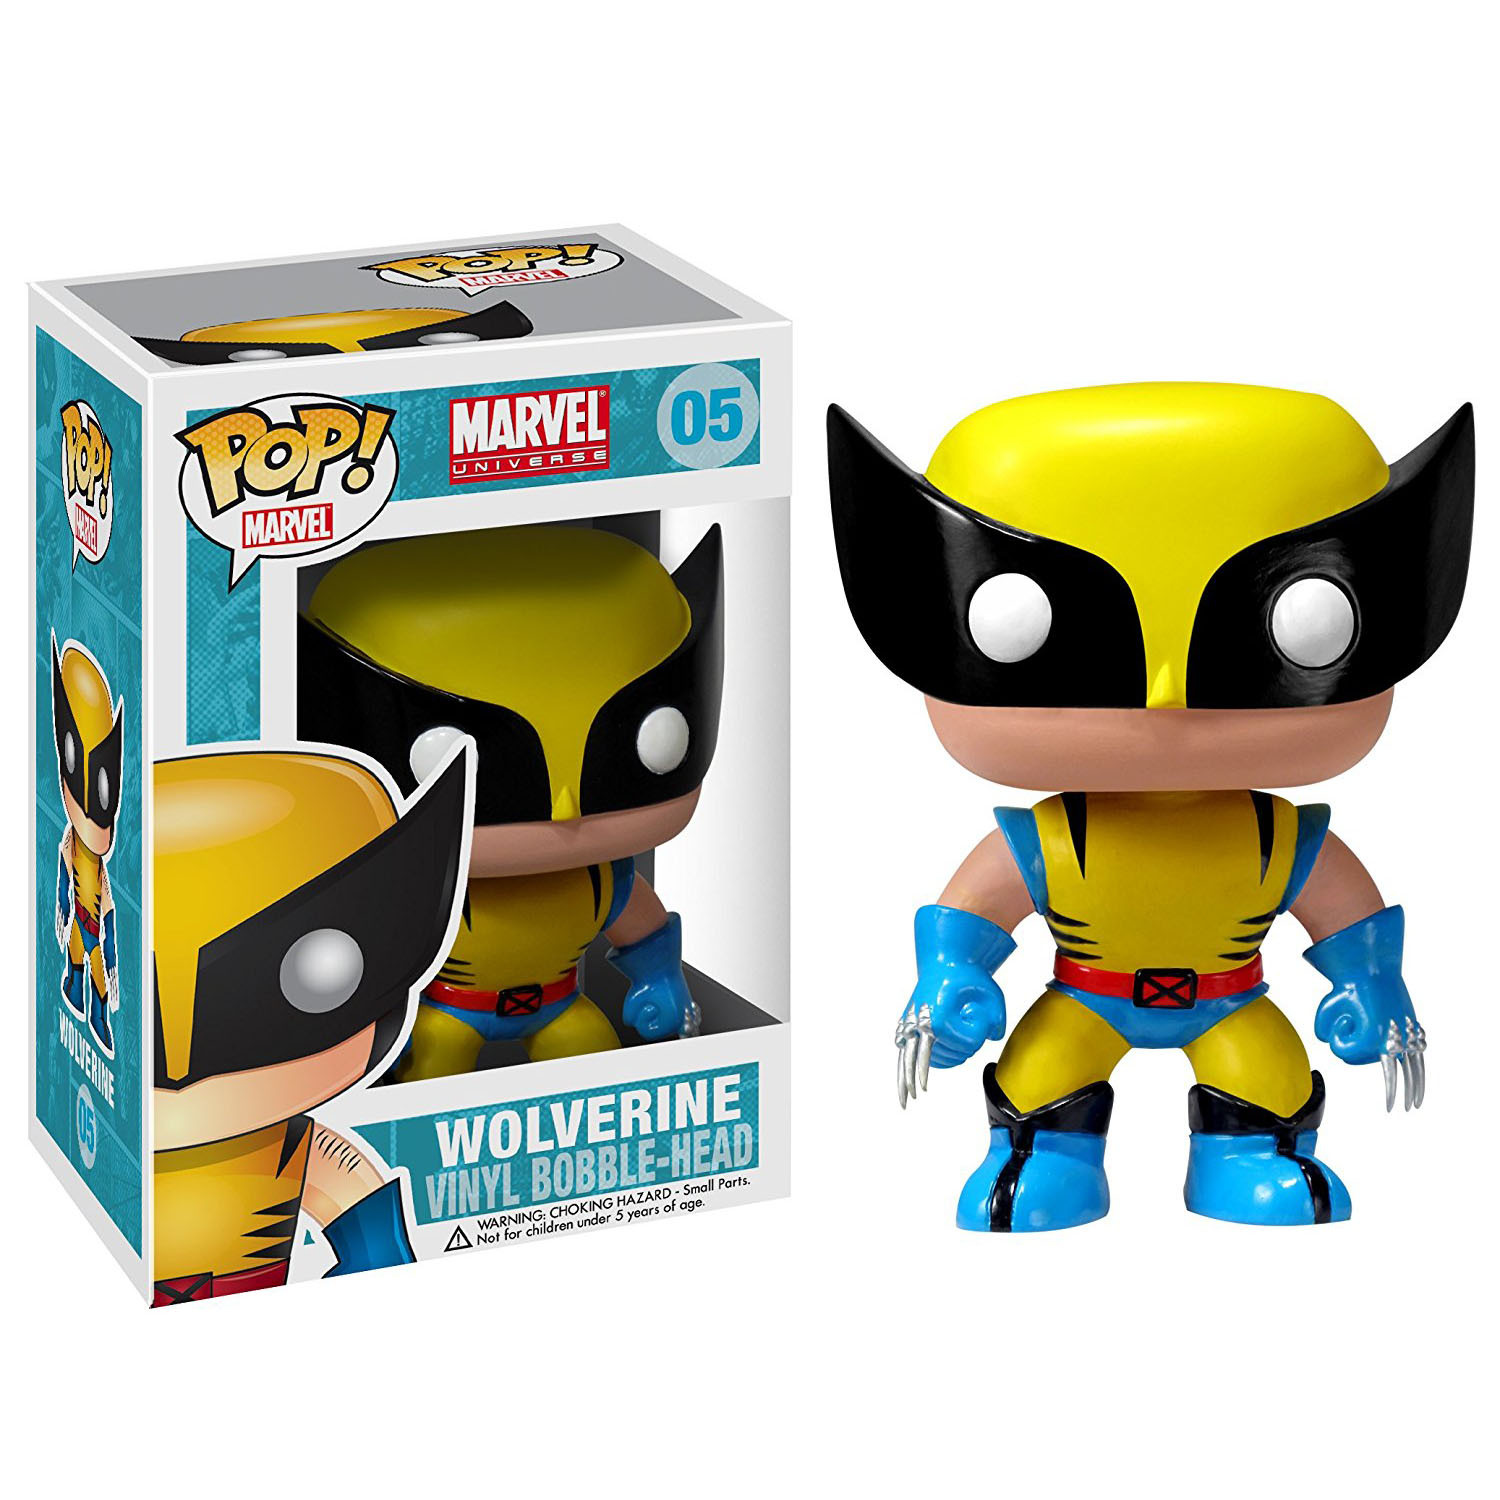 Chanycore Funko Pop Marvel Avenger 05# Wolverine X-men LOGAN Anime Hot Movie Vinyl Action Figure Toys PVC Doll Kids Toys  official funko pop marvel x men logan wolverine vinyl action figure collectible model toy with original box